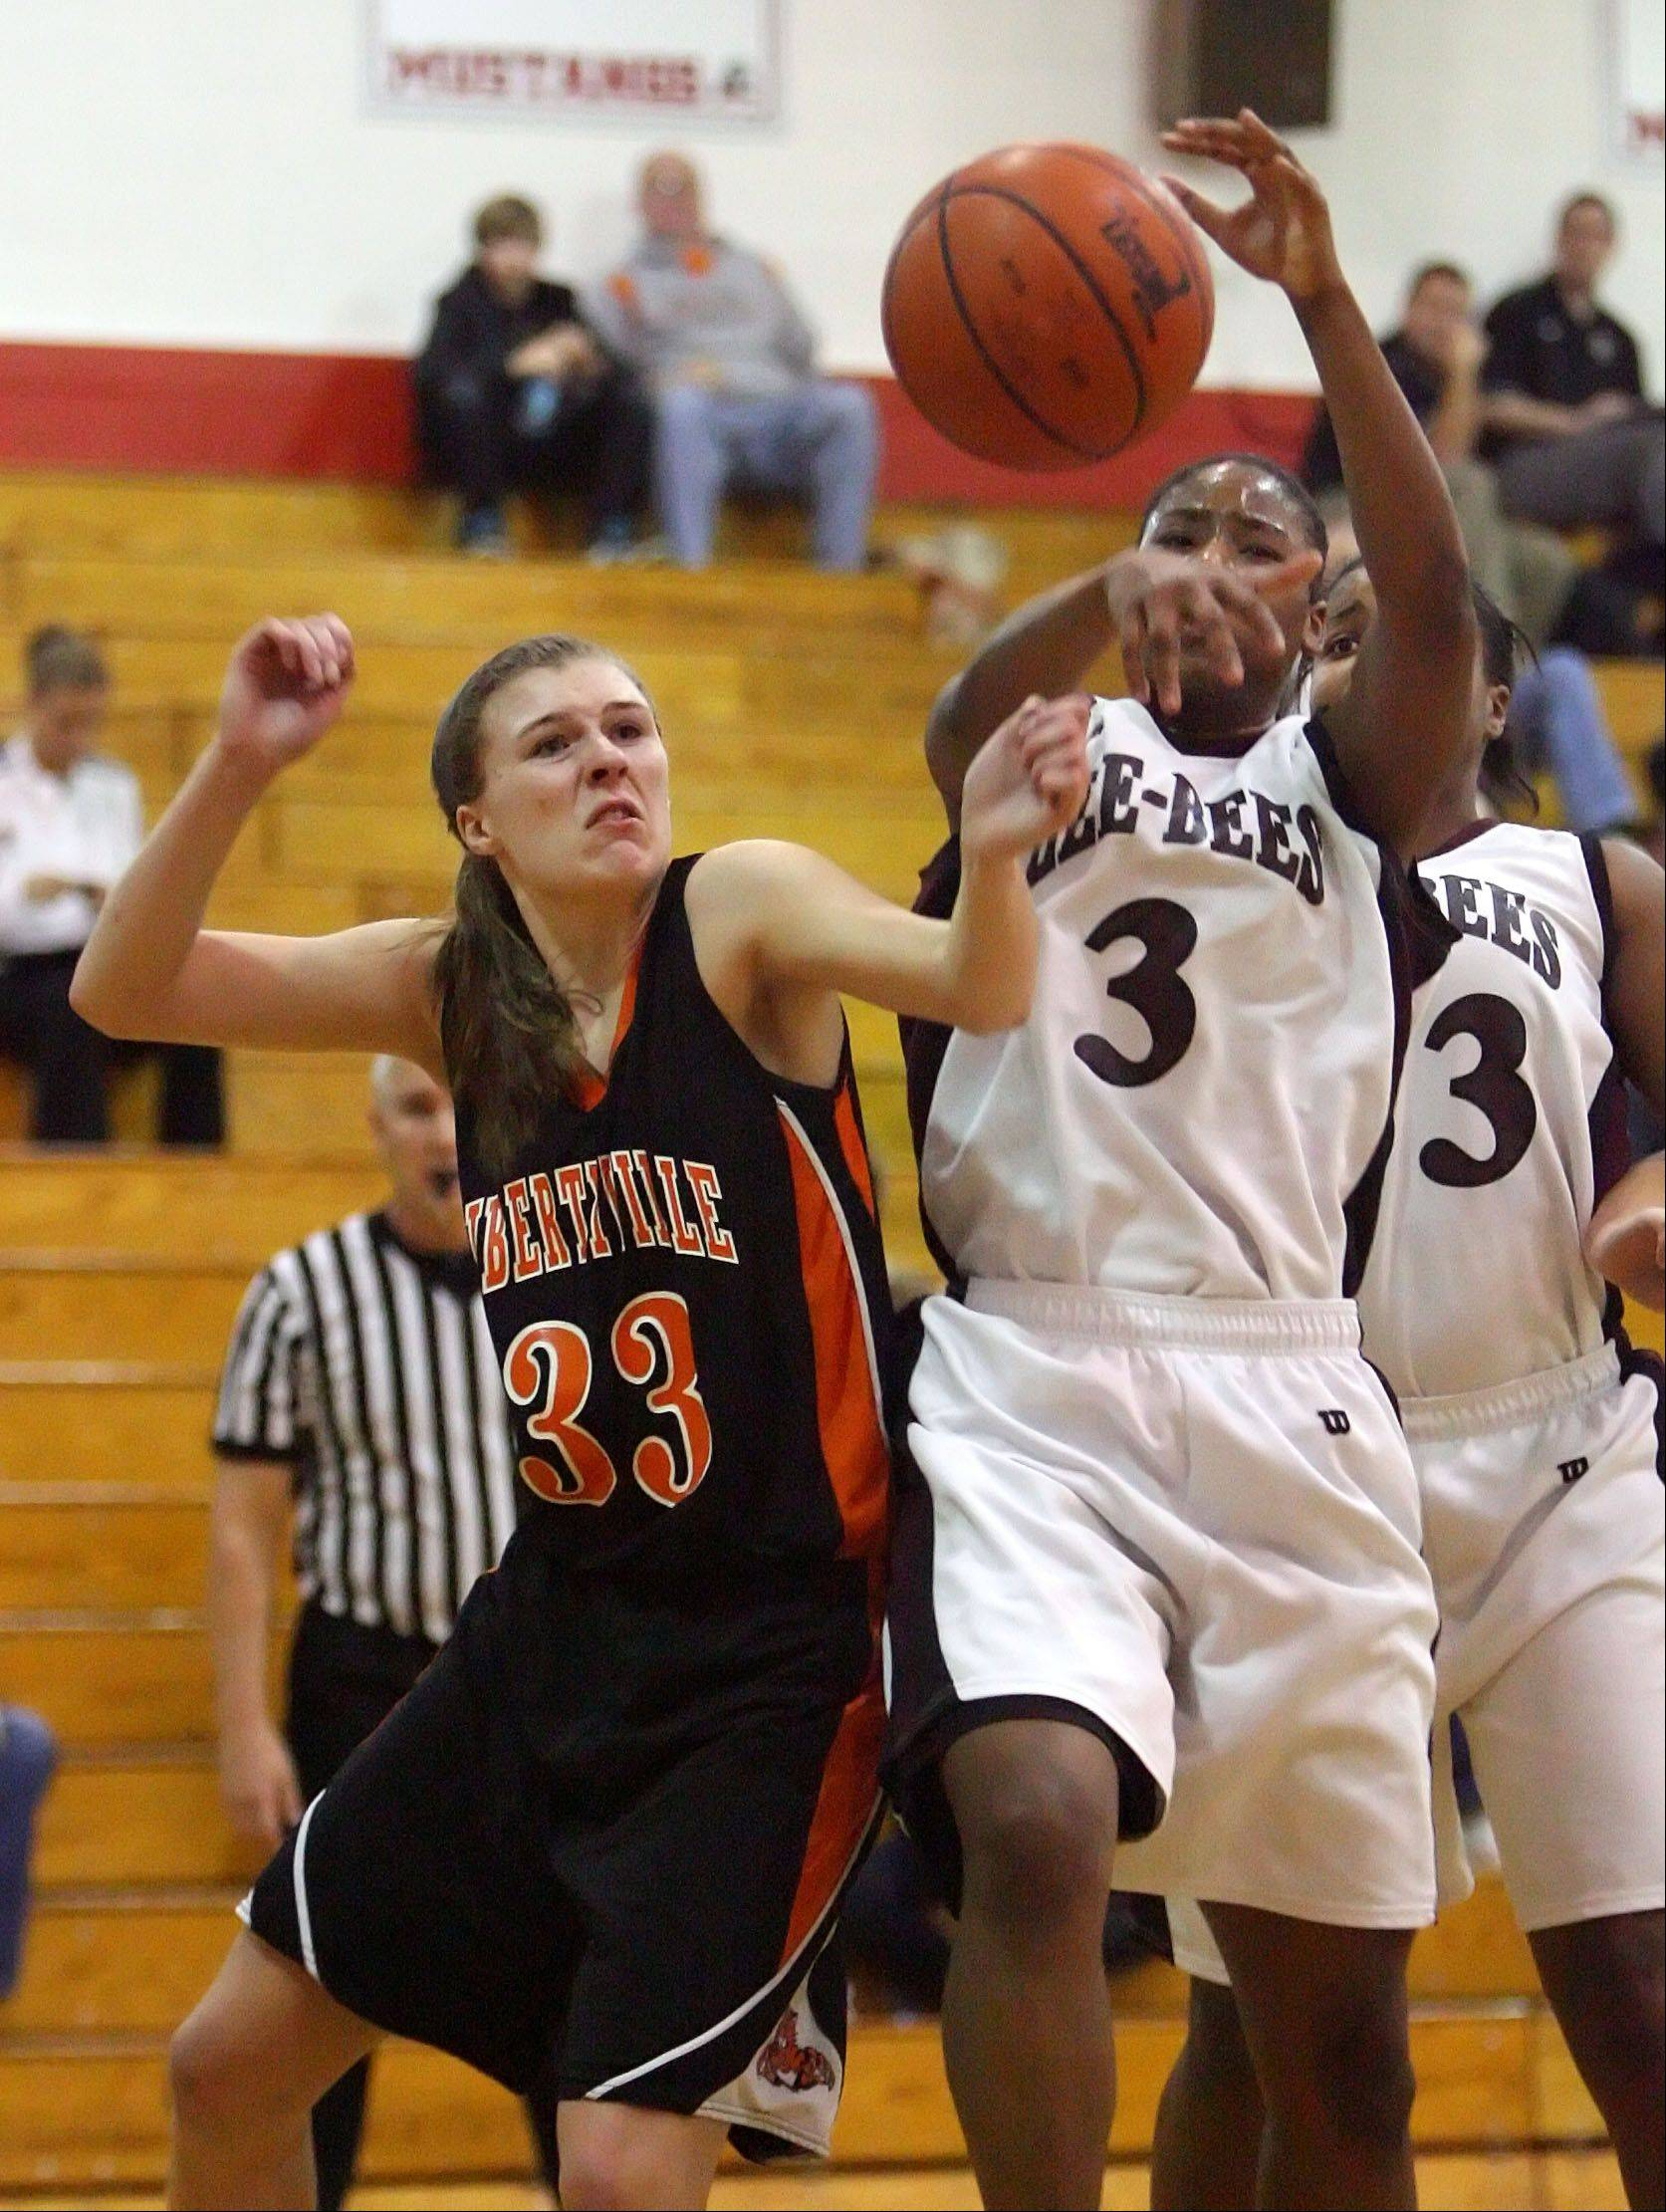 Libertyville's Haley Hoeksel, left, and Zion-Benton's Octavia Crump battle for a rebound.